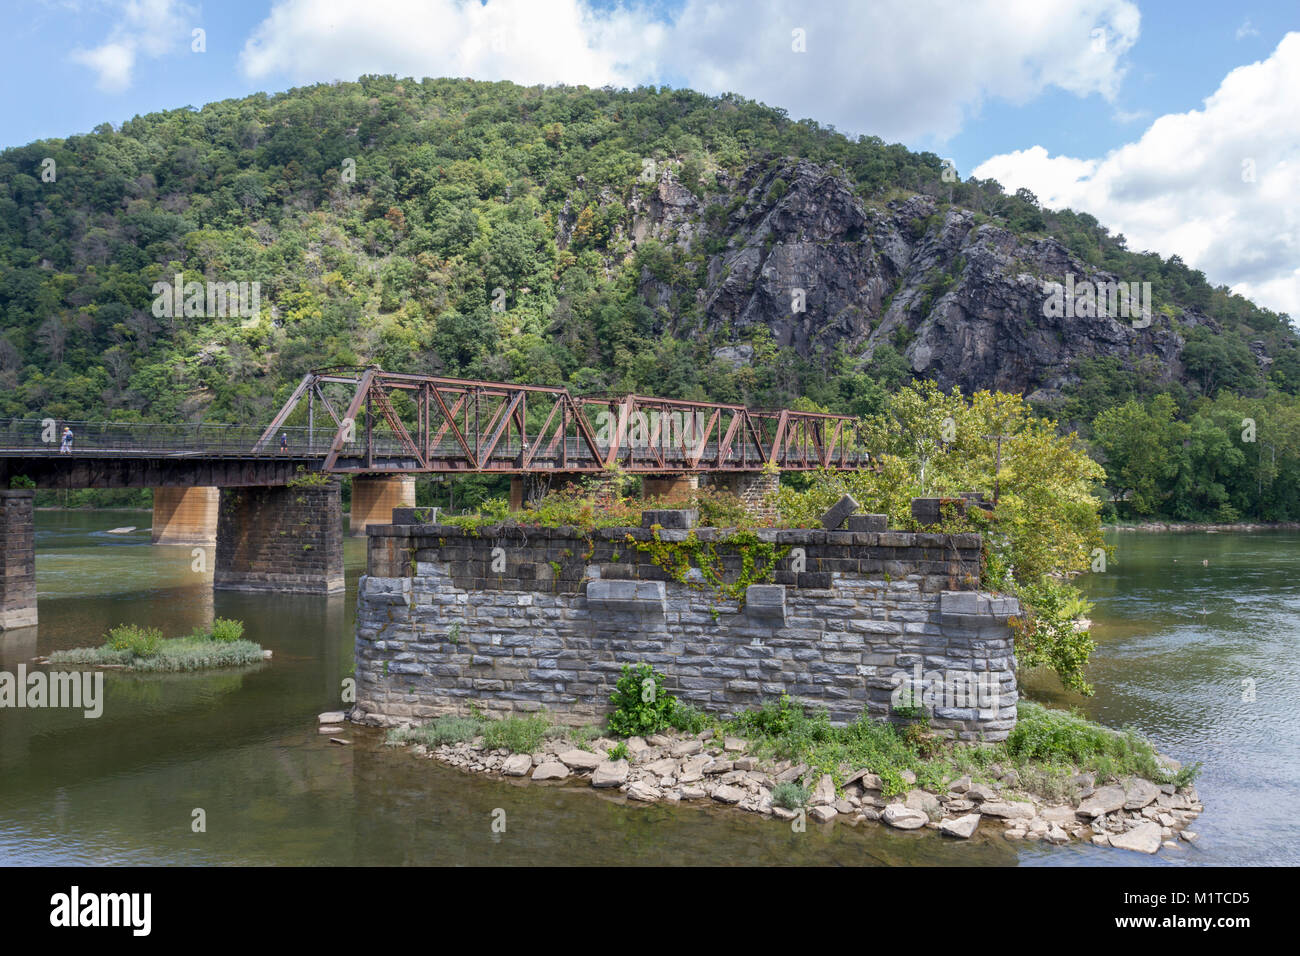 The Baltimore & Ohio Railroad Crossing, Potomac River, West Virginia, United States. - Stock Image